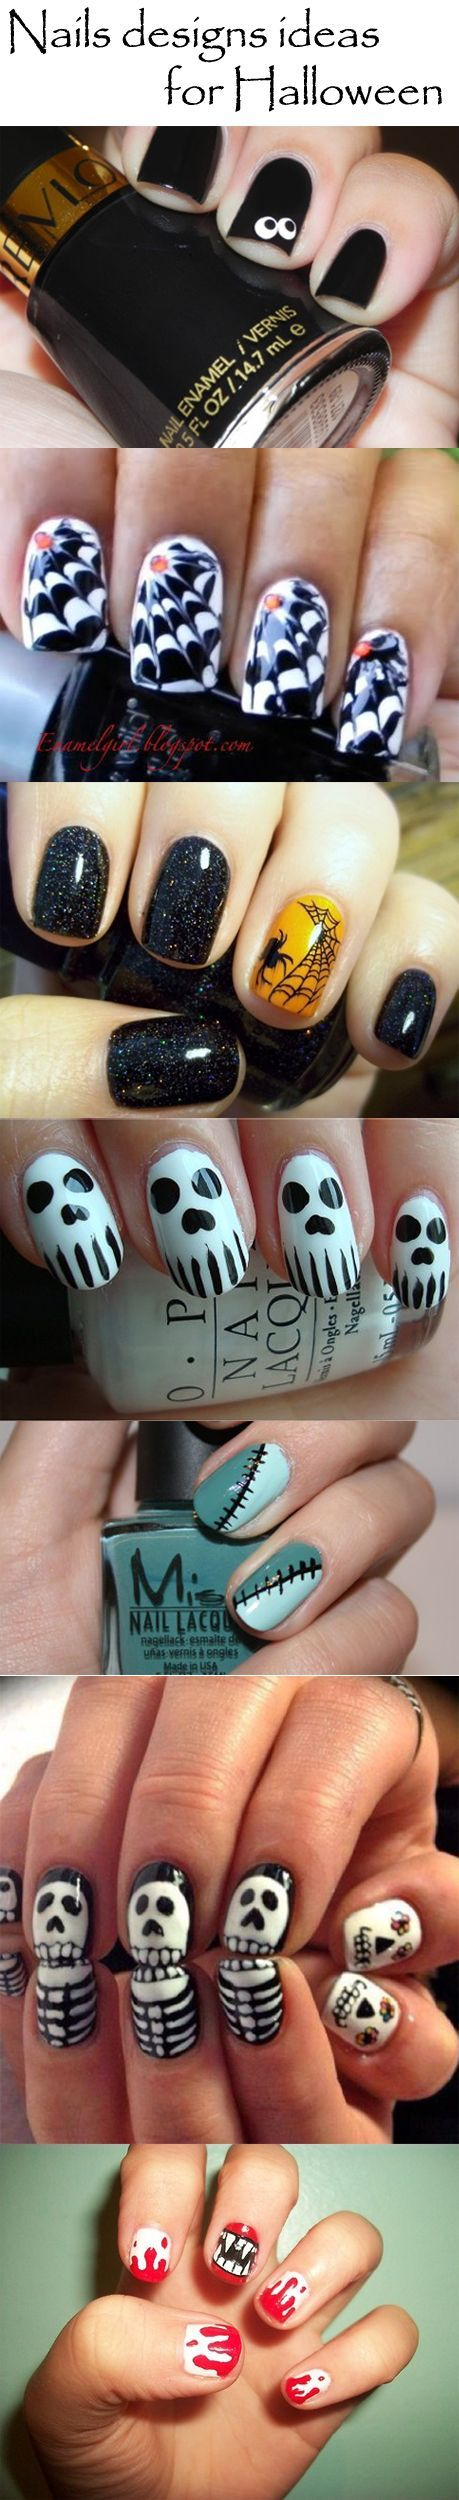 cute Halloween nails; nails designs ideas for Halloween... love the black sparkles!: